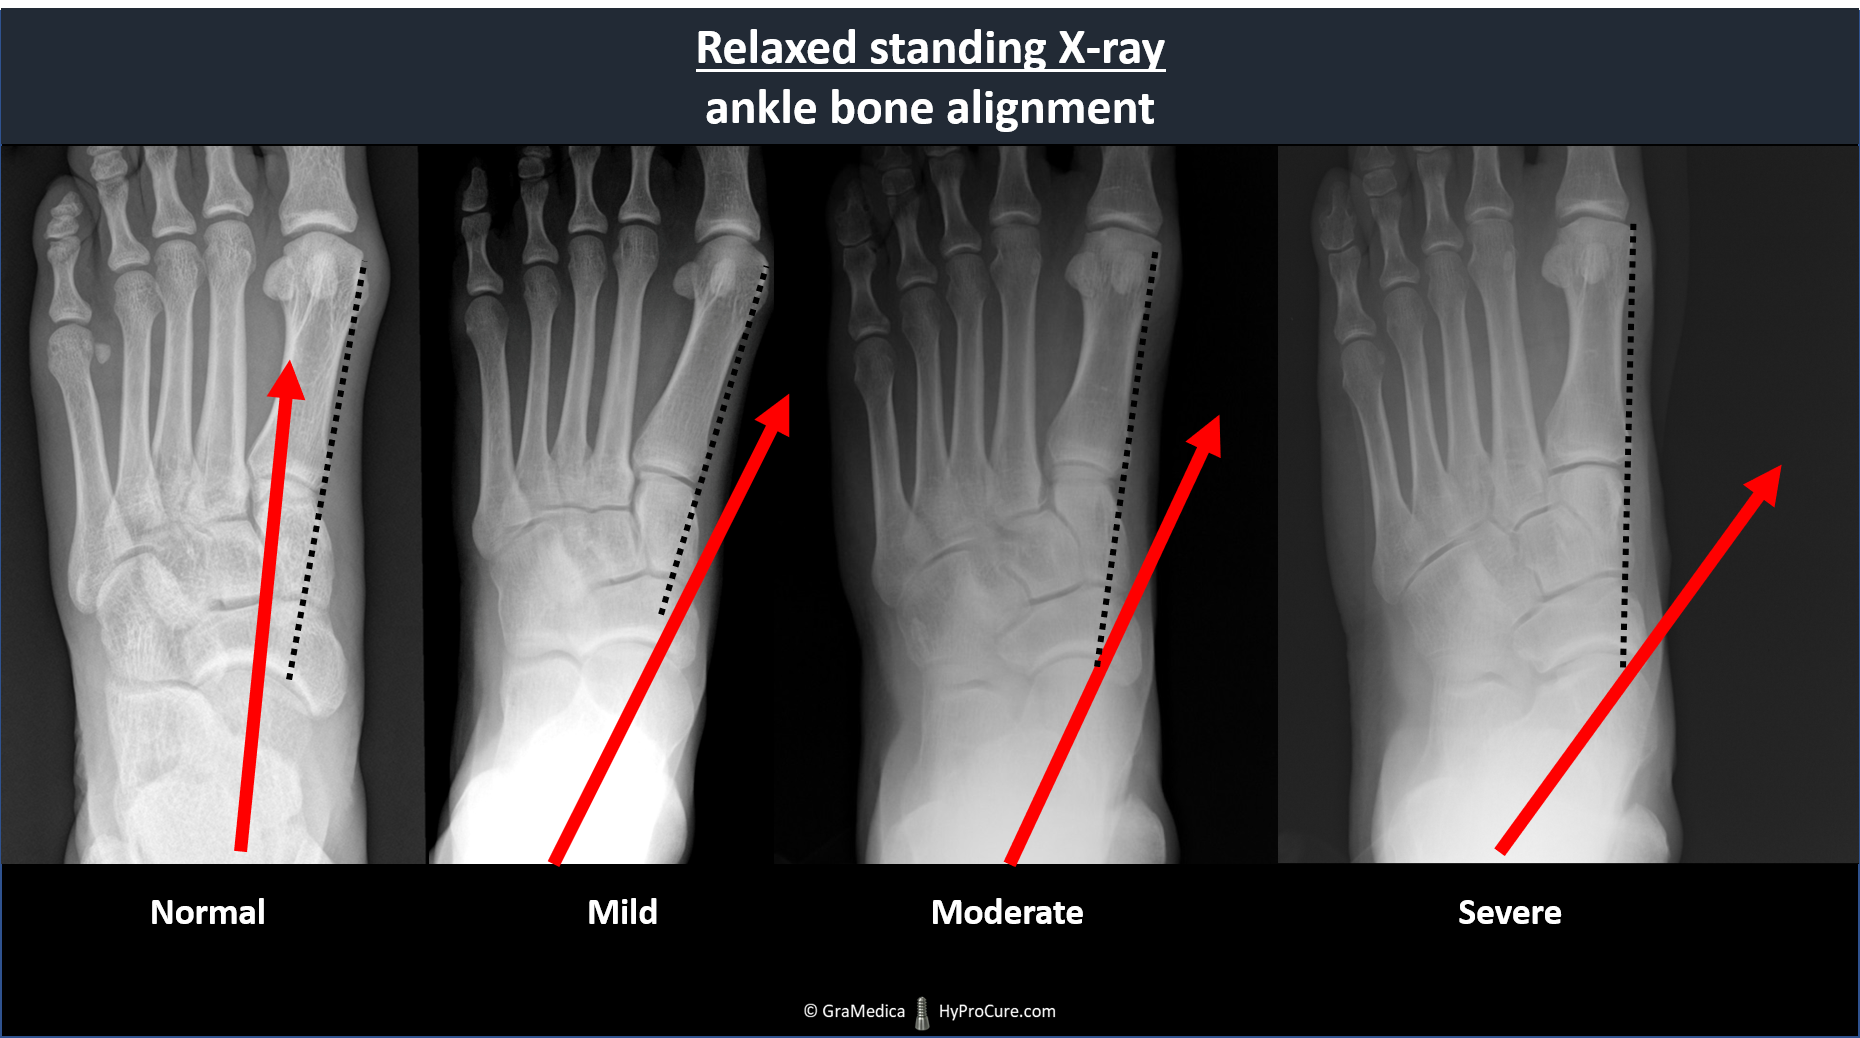 Top-bottom view relaxed standing x-ray - normal, mild, moderate, severe ankle bone alignment